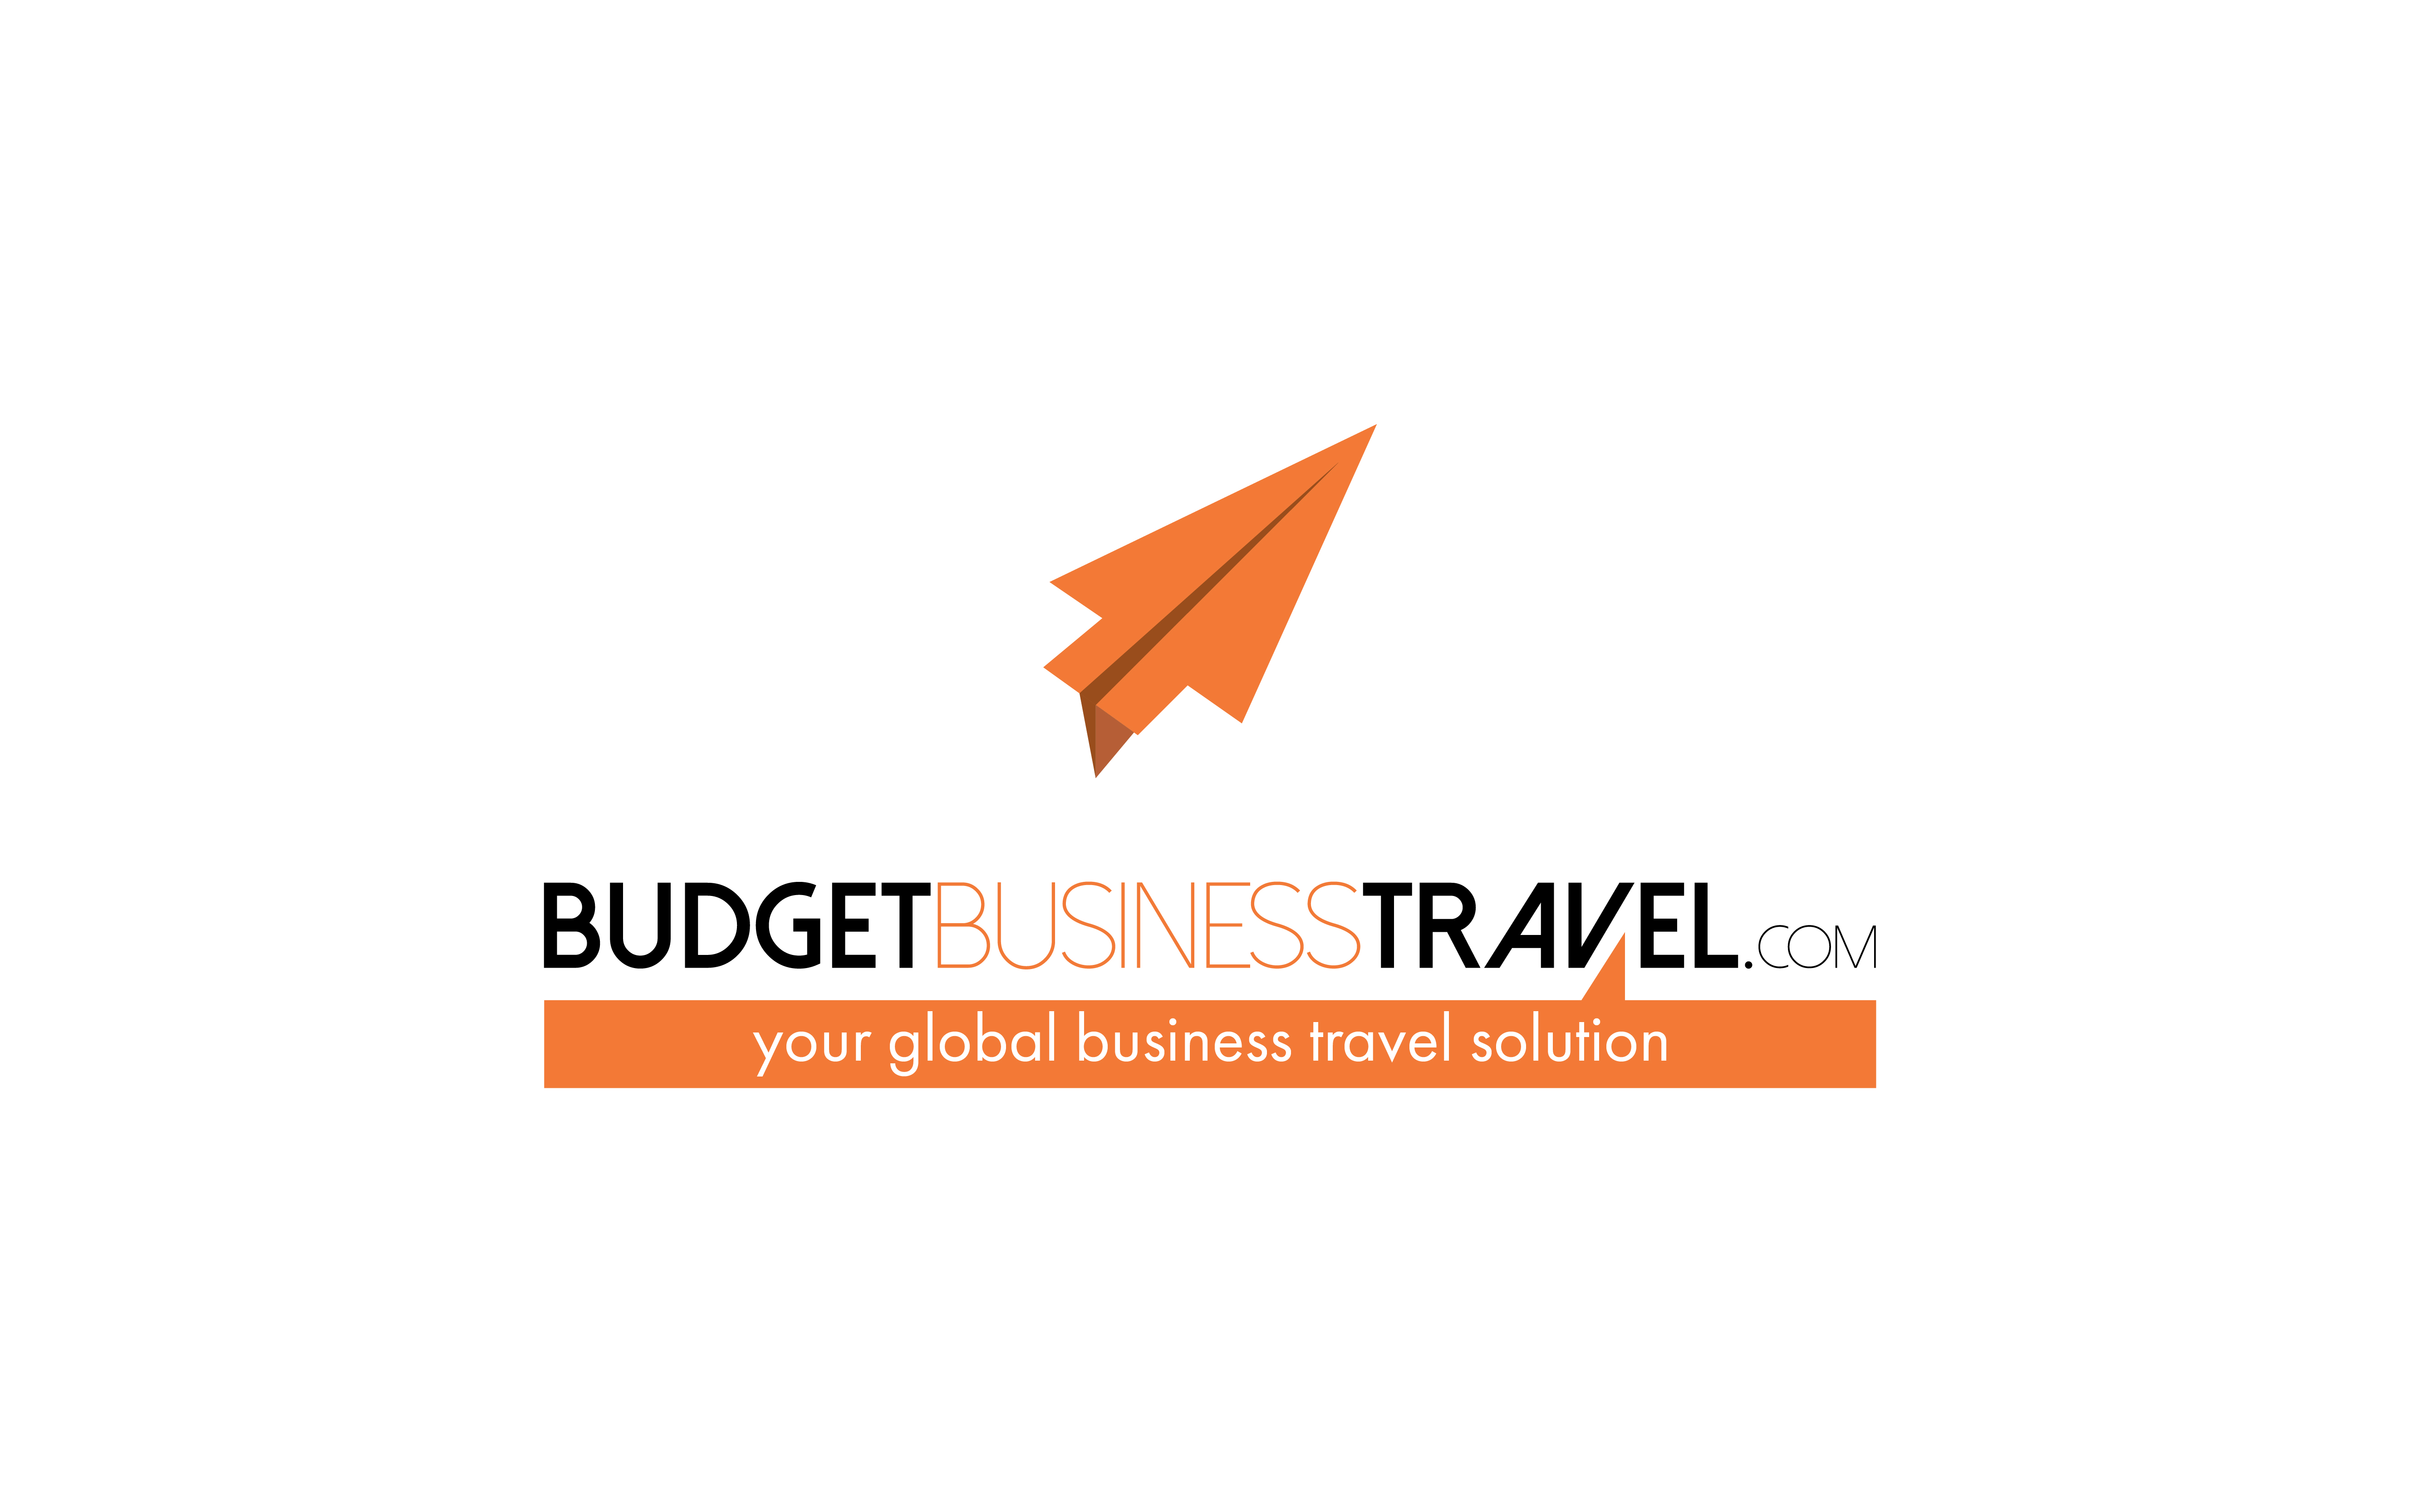 Budget Business Travel logo-01